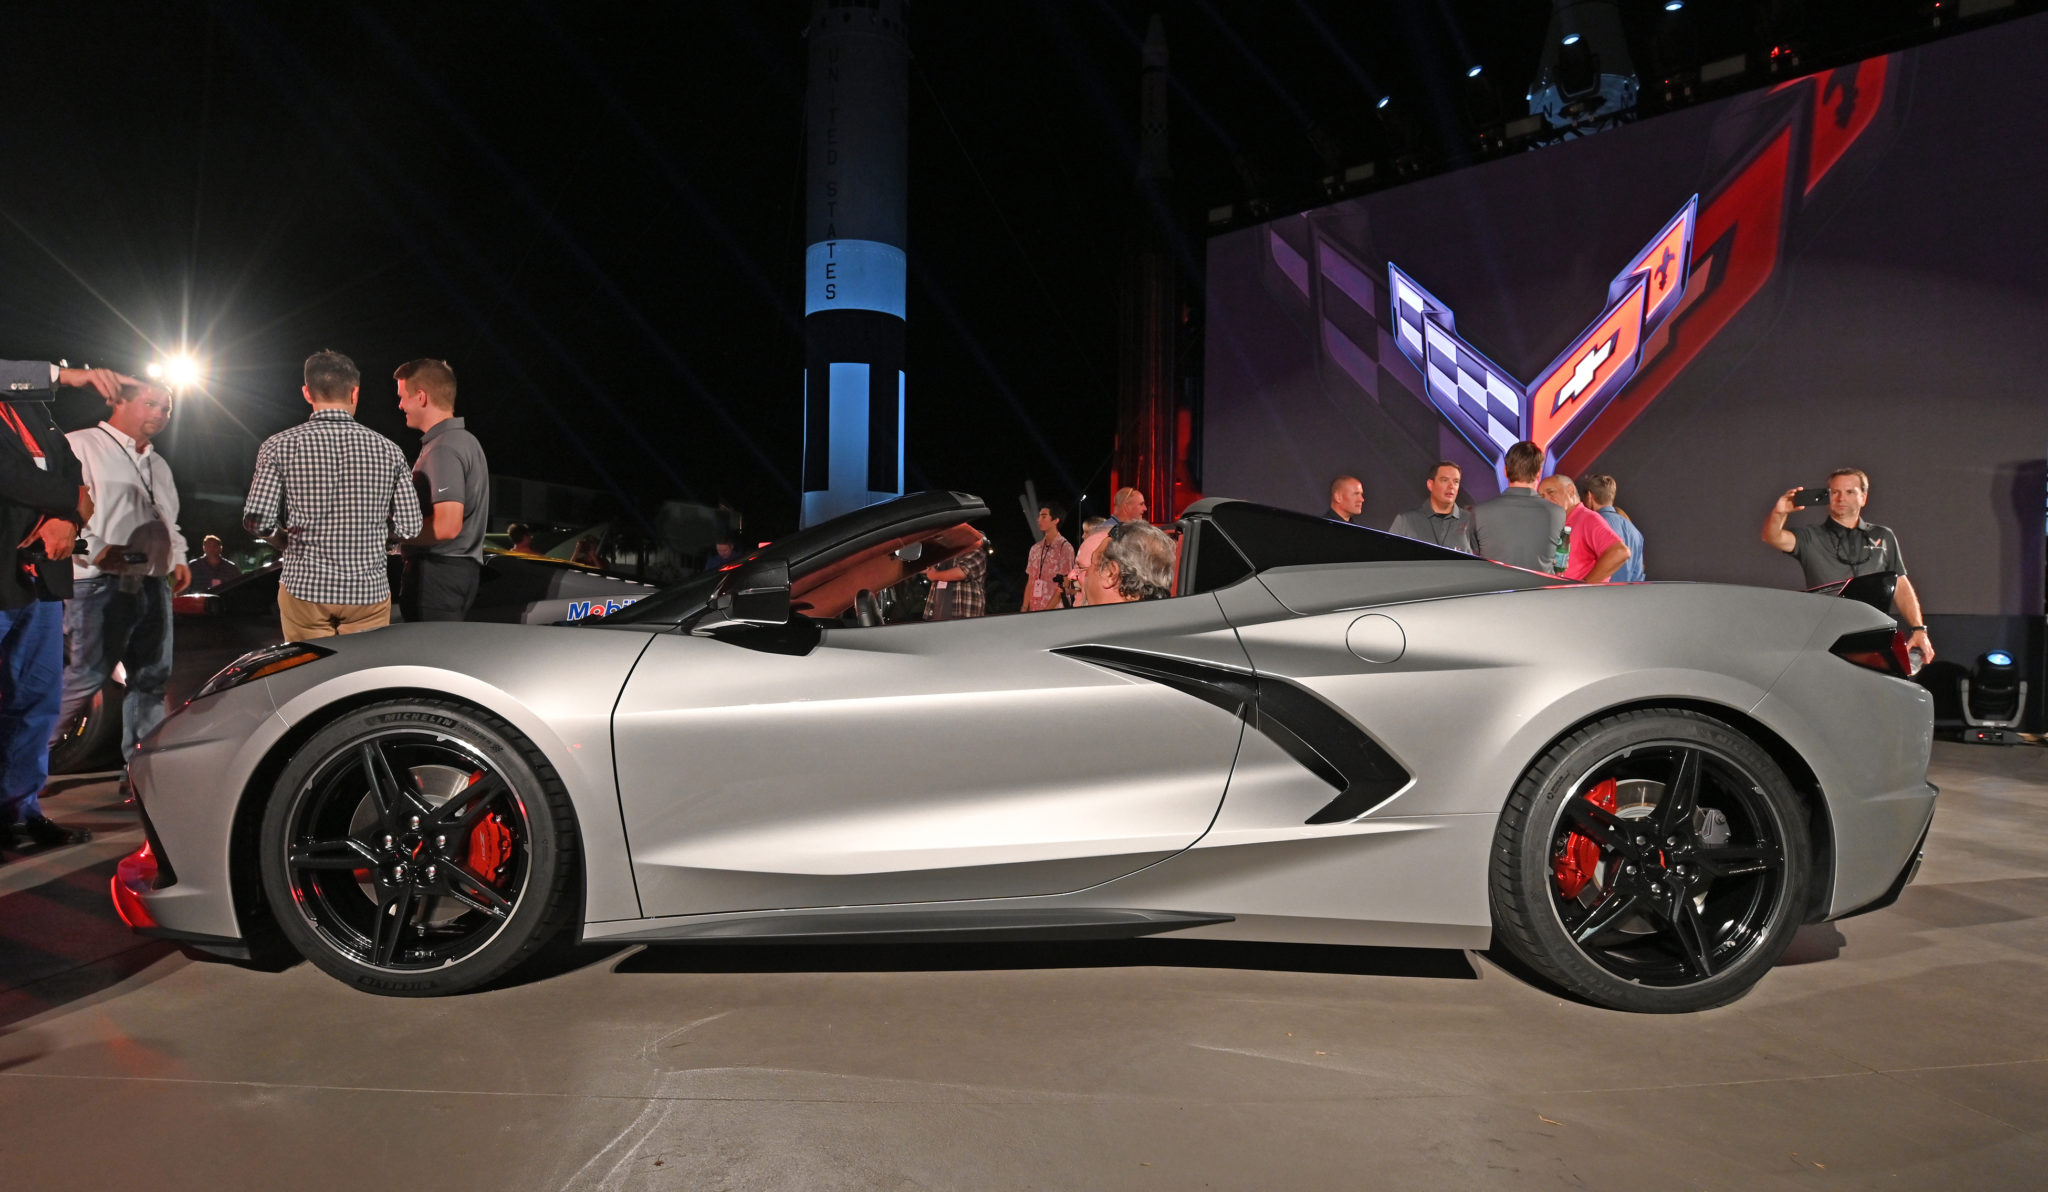 Napleton News – FIRST VIEWS OF THE CORVETTE STINGRAY C8 CONVERTIBLE